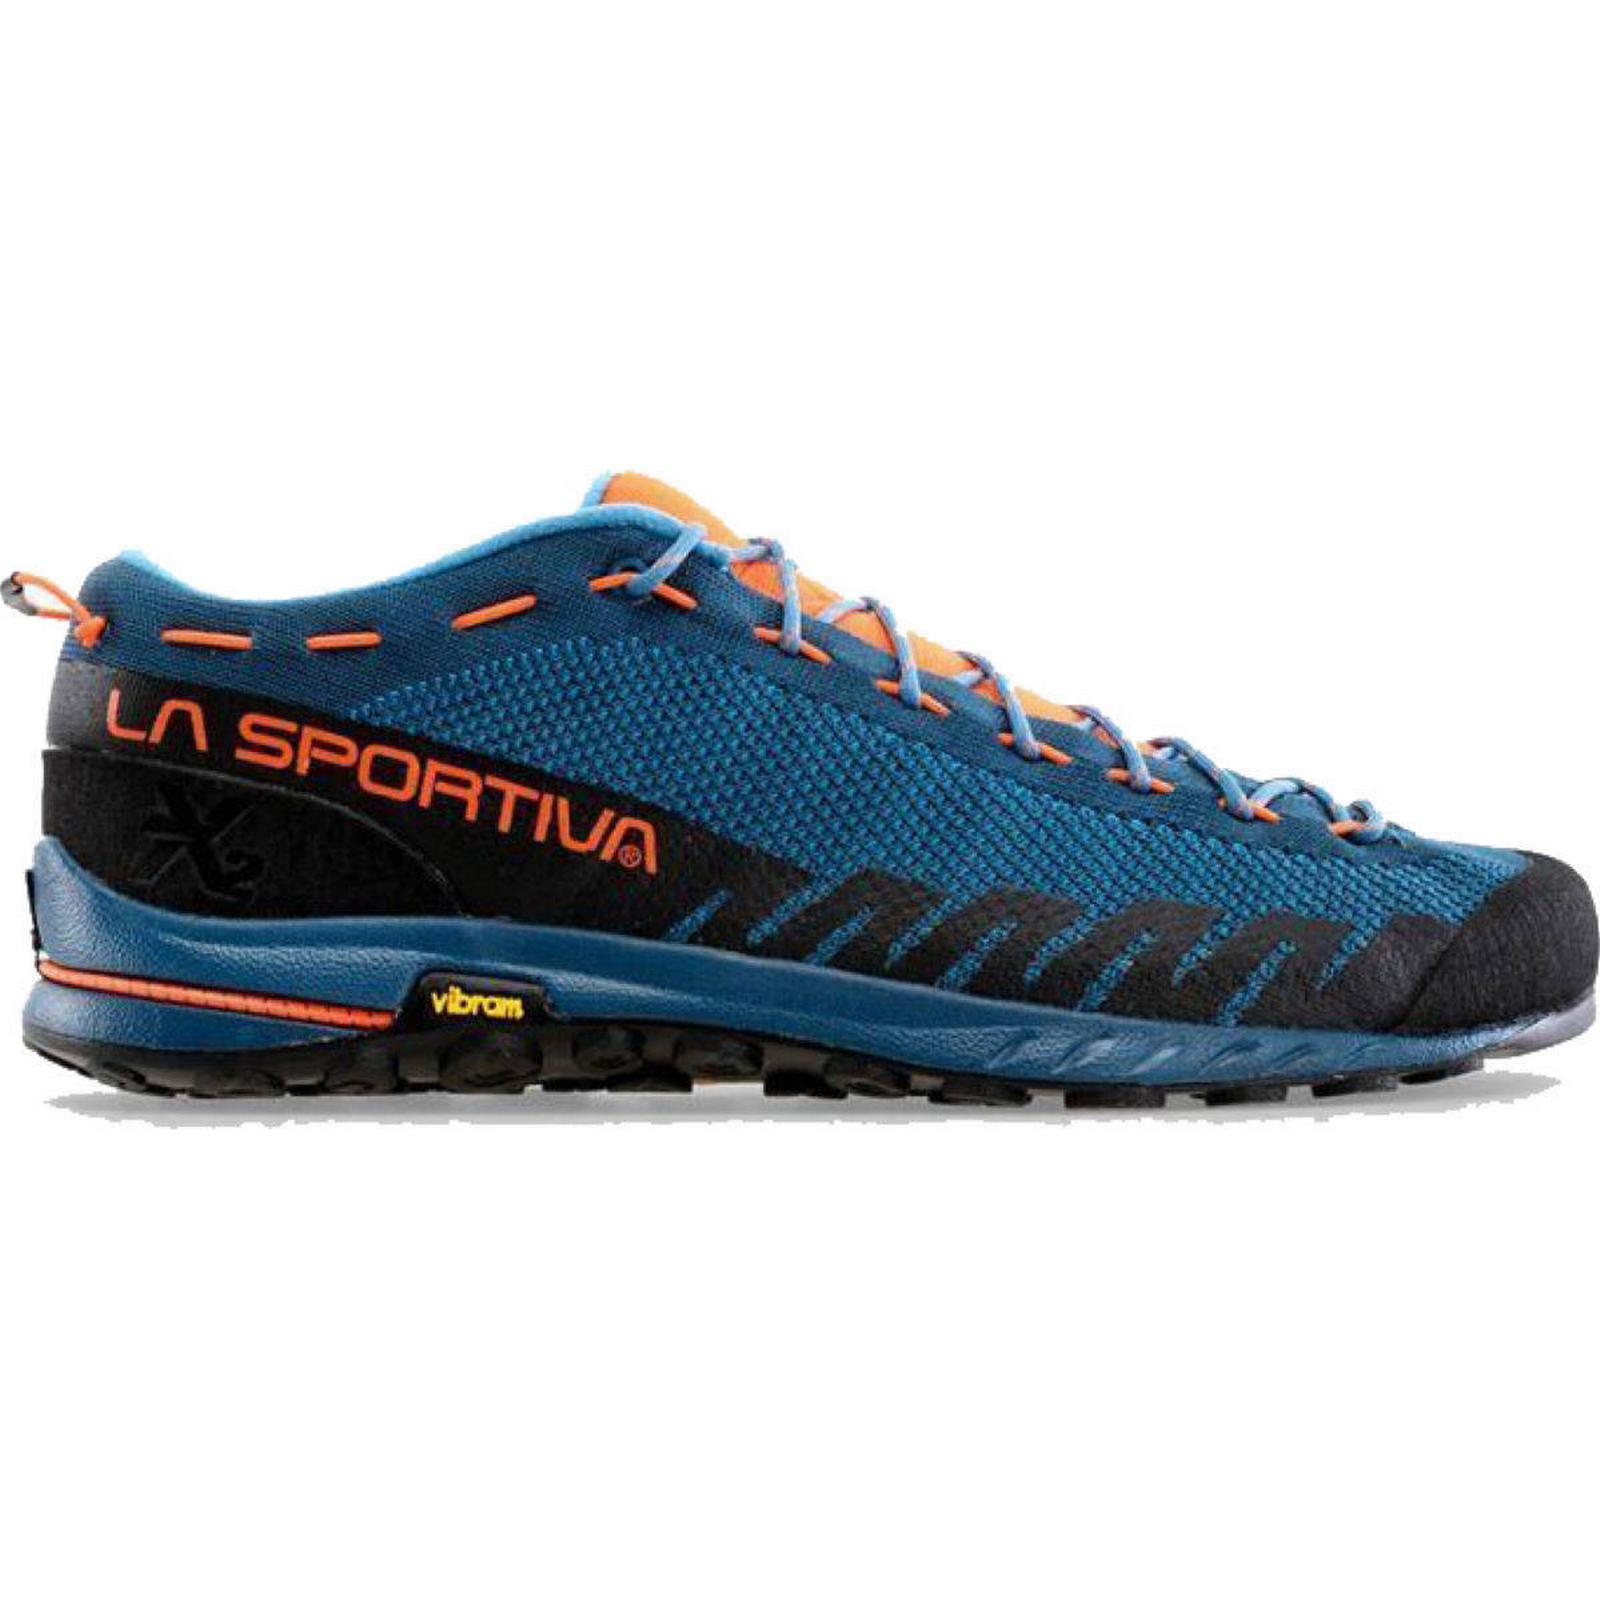 Wiggle Online Cycle Sportiva Shop La Sportiva Cycle TX2 Shoes c9c9d8